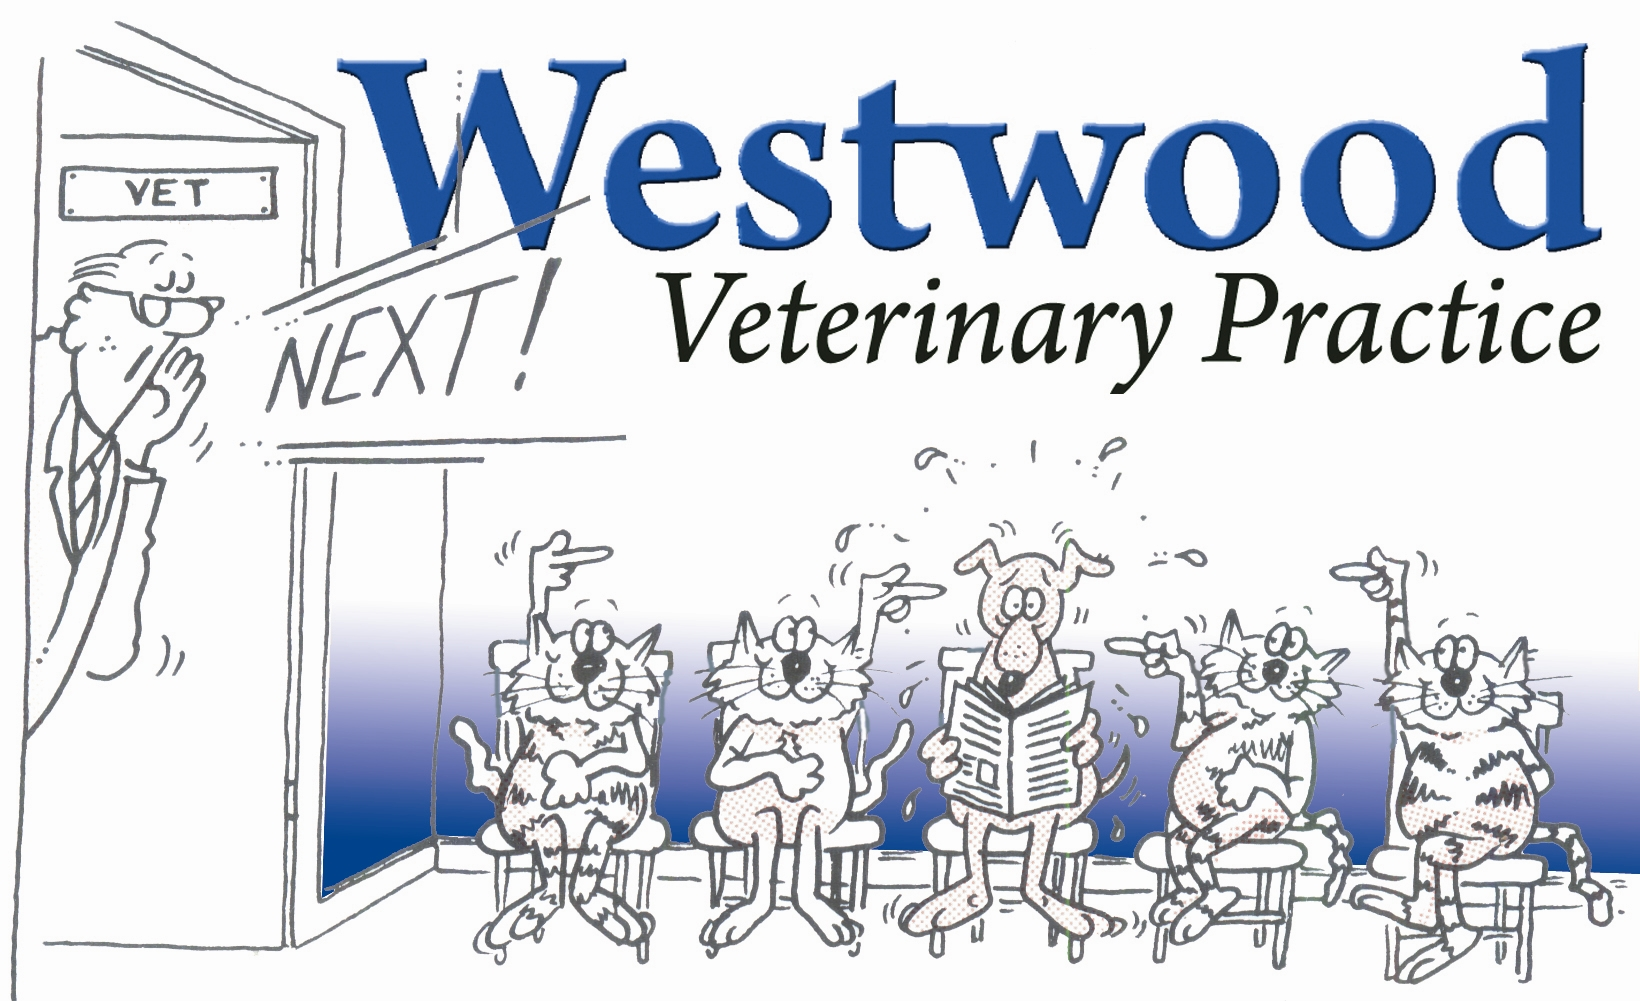 Westwood Veterinary Practice Ltd - Garforth